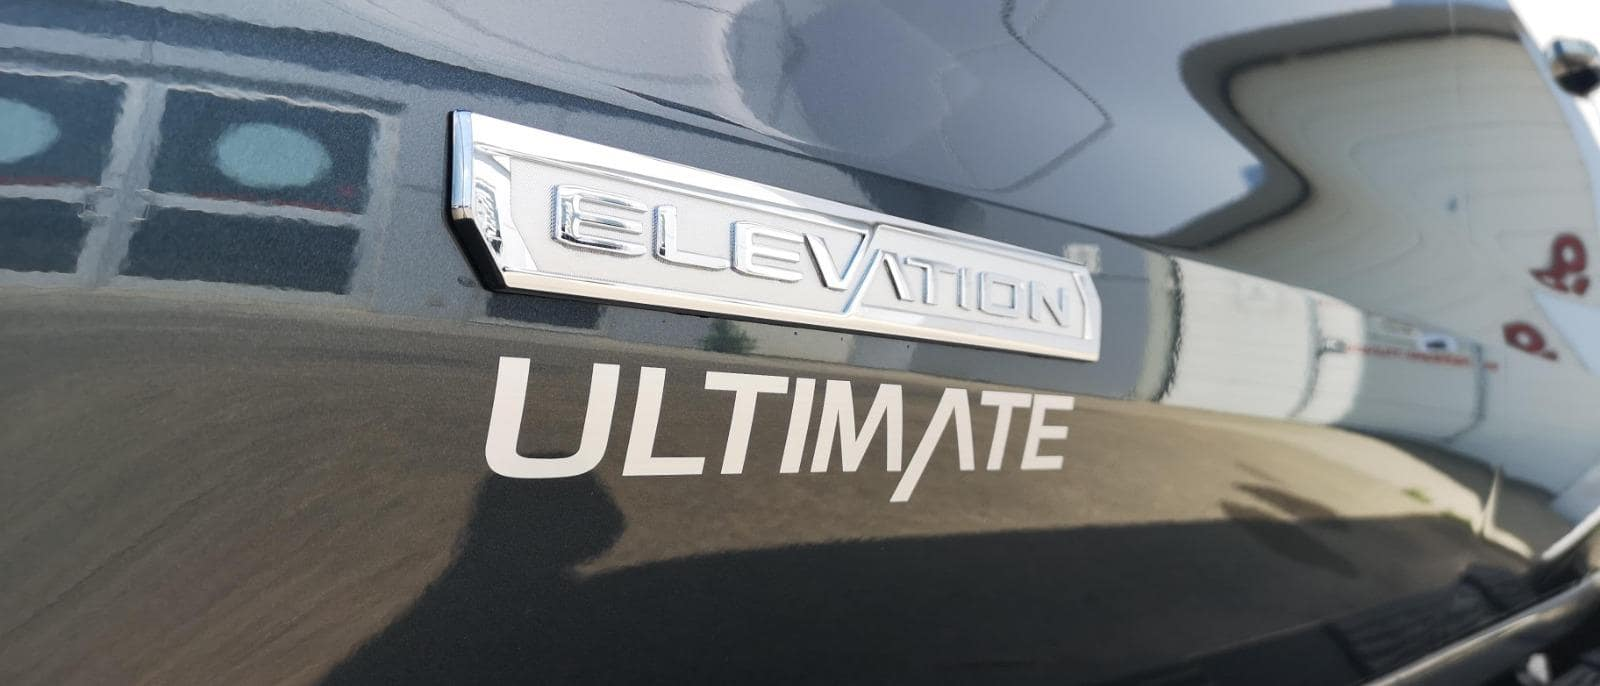 Elevation Ultimate